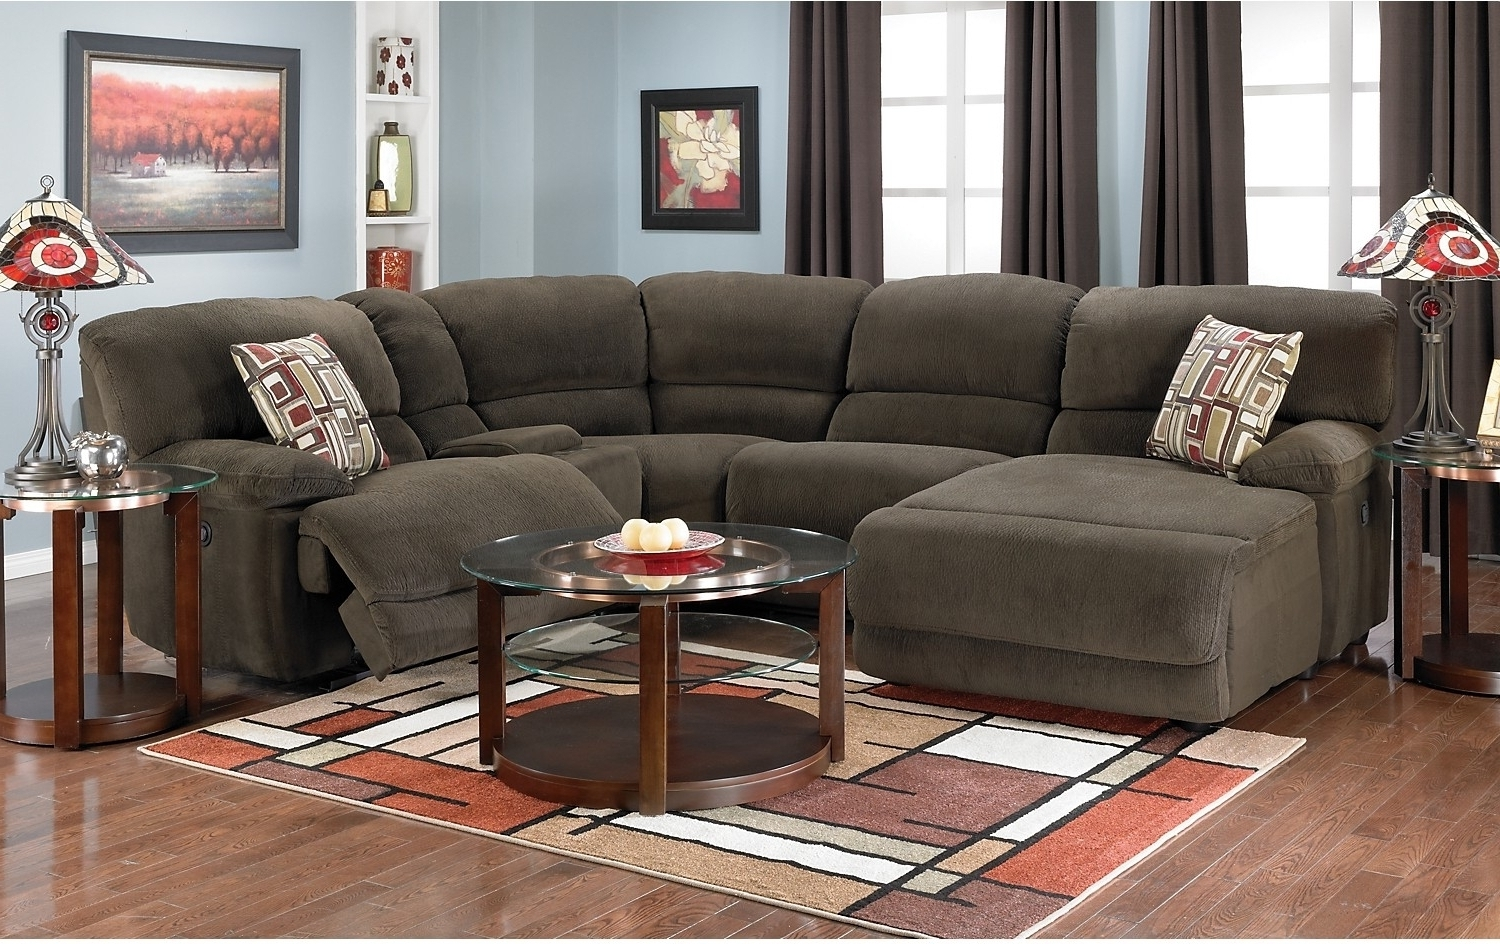 Sectional Sofas At Brick Regarding 2017 Elegant The Brick Sectionals – Buildsimplehome (View 8 of 15)